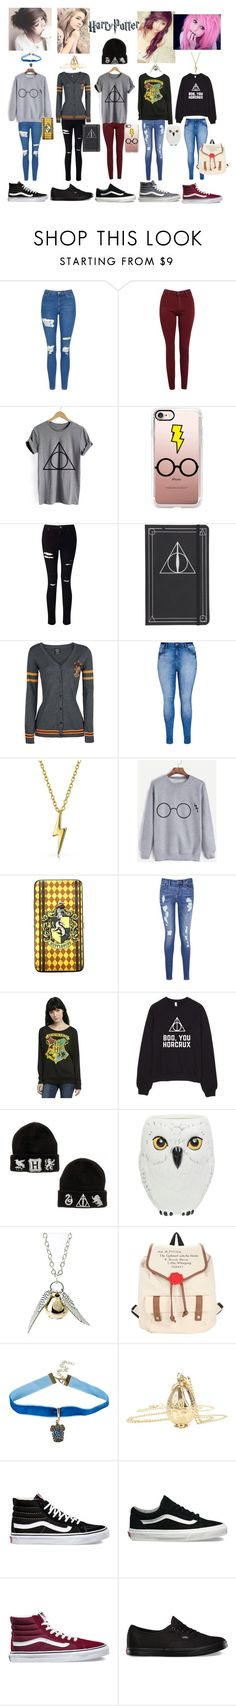 """week of harry potter!!"" by hunterscloset ❤ liked on Polyvore featuring Topshop, AG Adriano Goldschmied, Casetify, Miss Selfridge, City Chic, Bling Jewelry, Warner Bros., Tommy Hilfiger, Quiksilver and Vans"